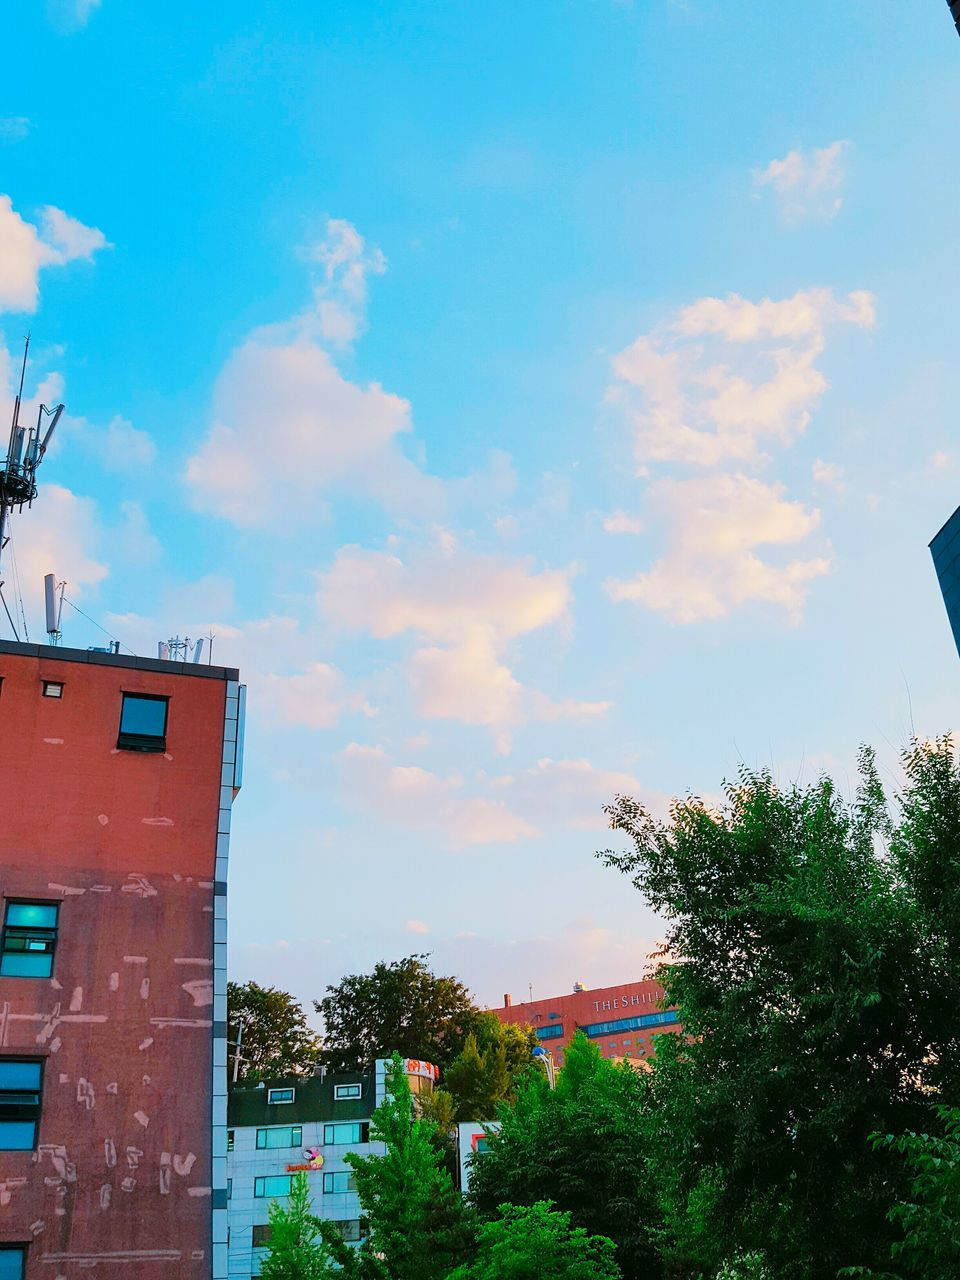 sky, architecture, cloud - sky, building exterior, built structure, tree, no people, outdoors, day, low angle view, red, city, nature